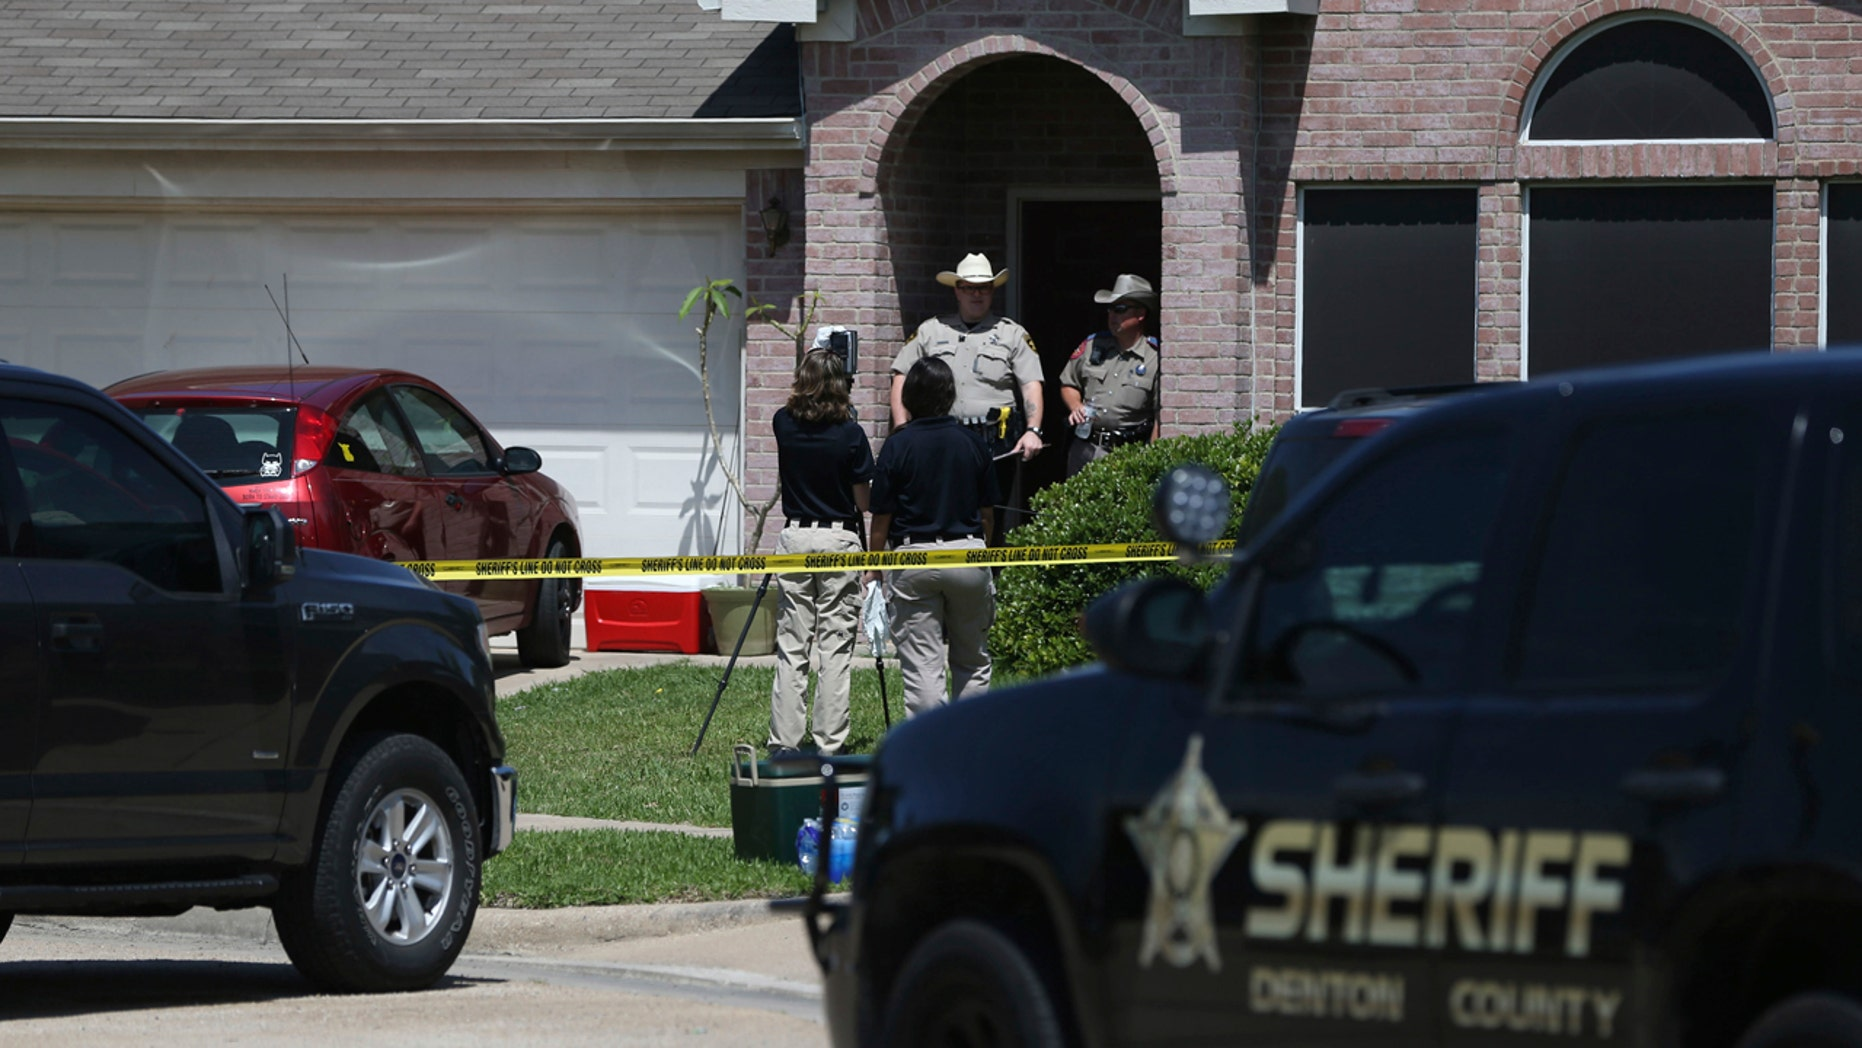 Denton County Sheriff's officers investigate a crime scene at a home where multiple people were killed and one was hospitalized after a shooting in the Remington Park neighborhood of Ponder, Texas, on Wednesday, May 16, 2018.